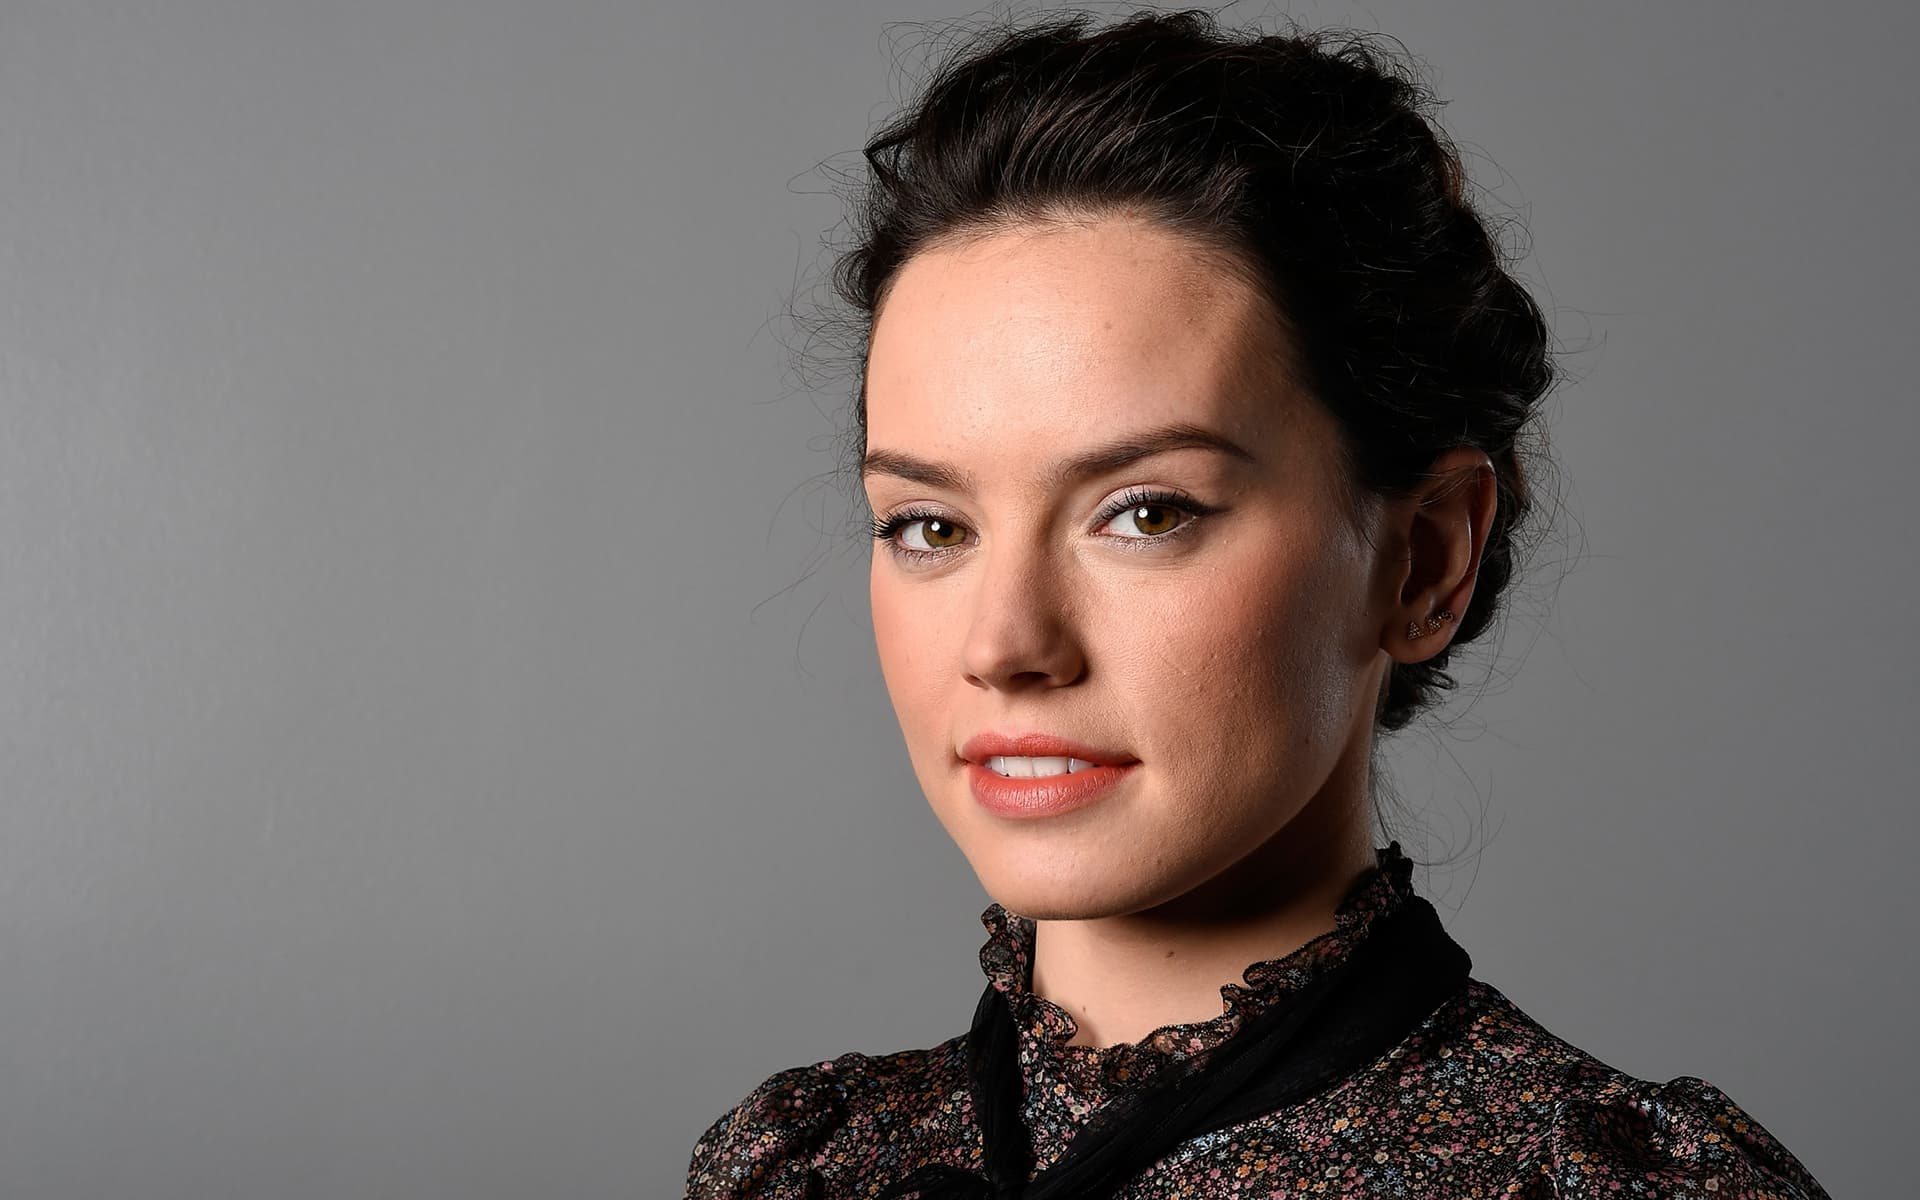 10 Daisy Ridley Wallpapers High Quality Resolution Download